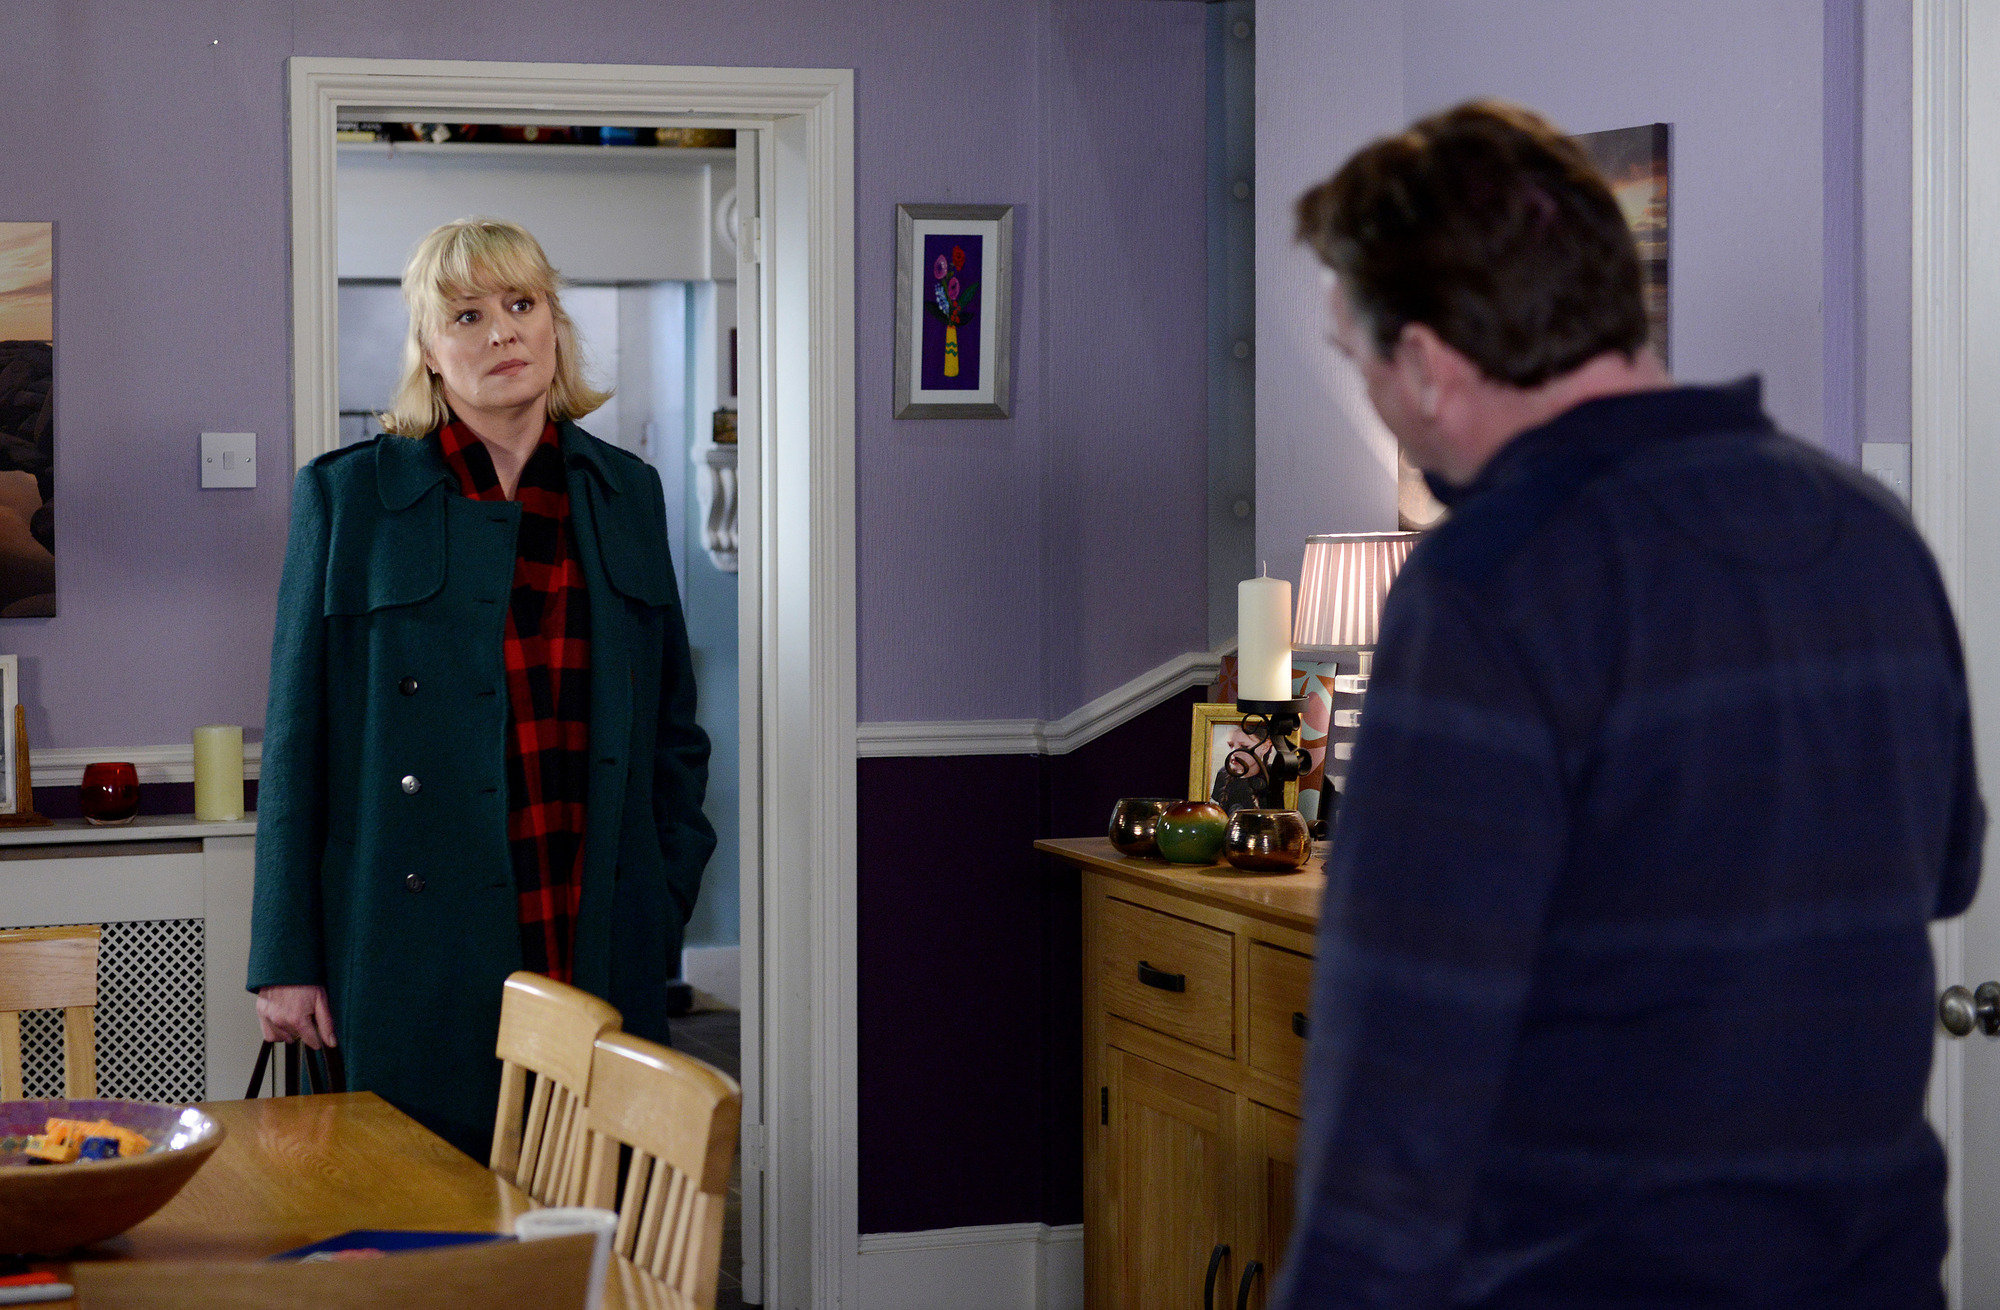 EastEnders: She used to be a bit dull but Jane Beale's return has reestablished her as a key character